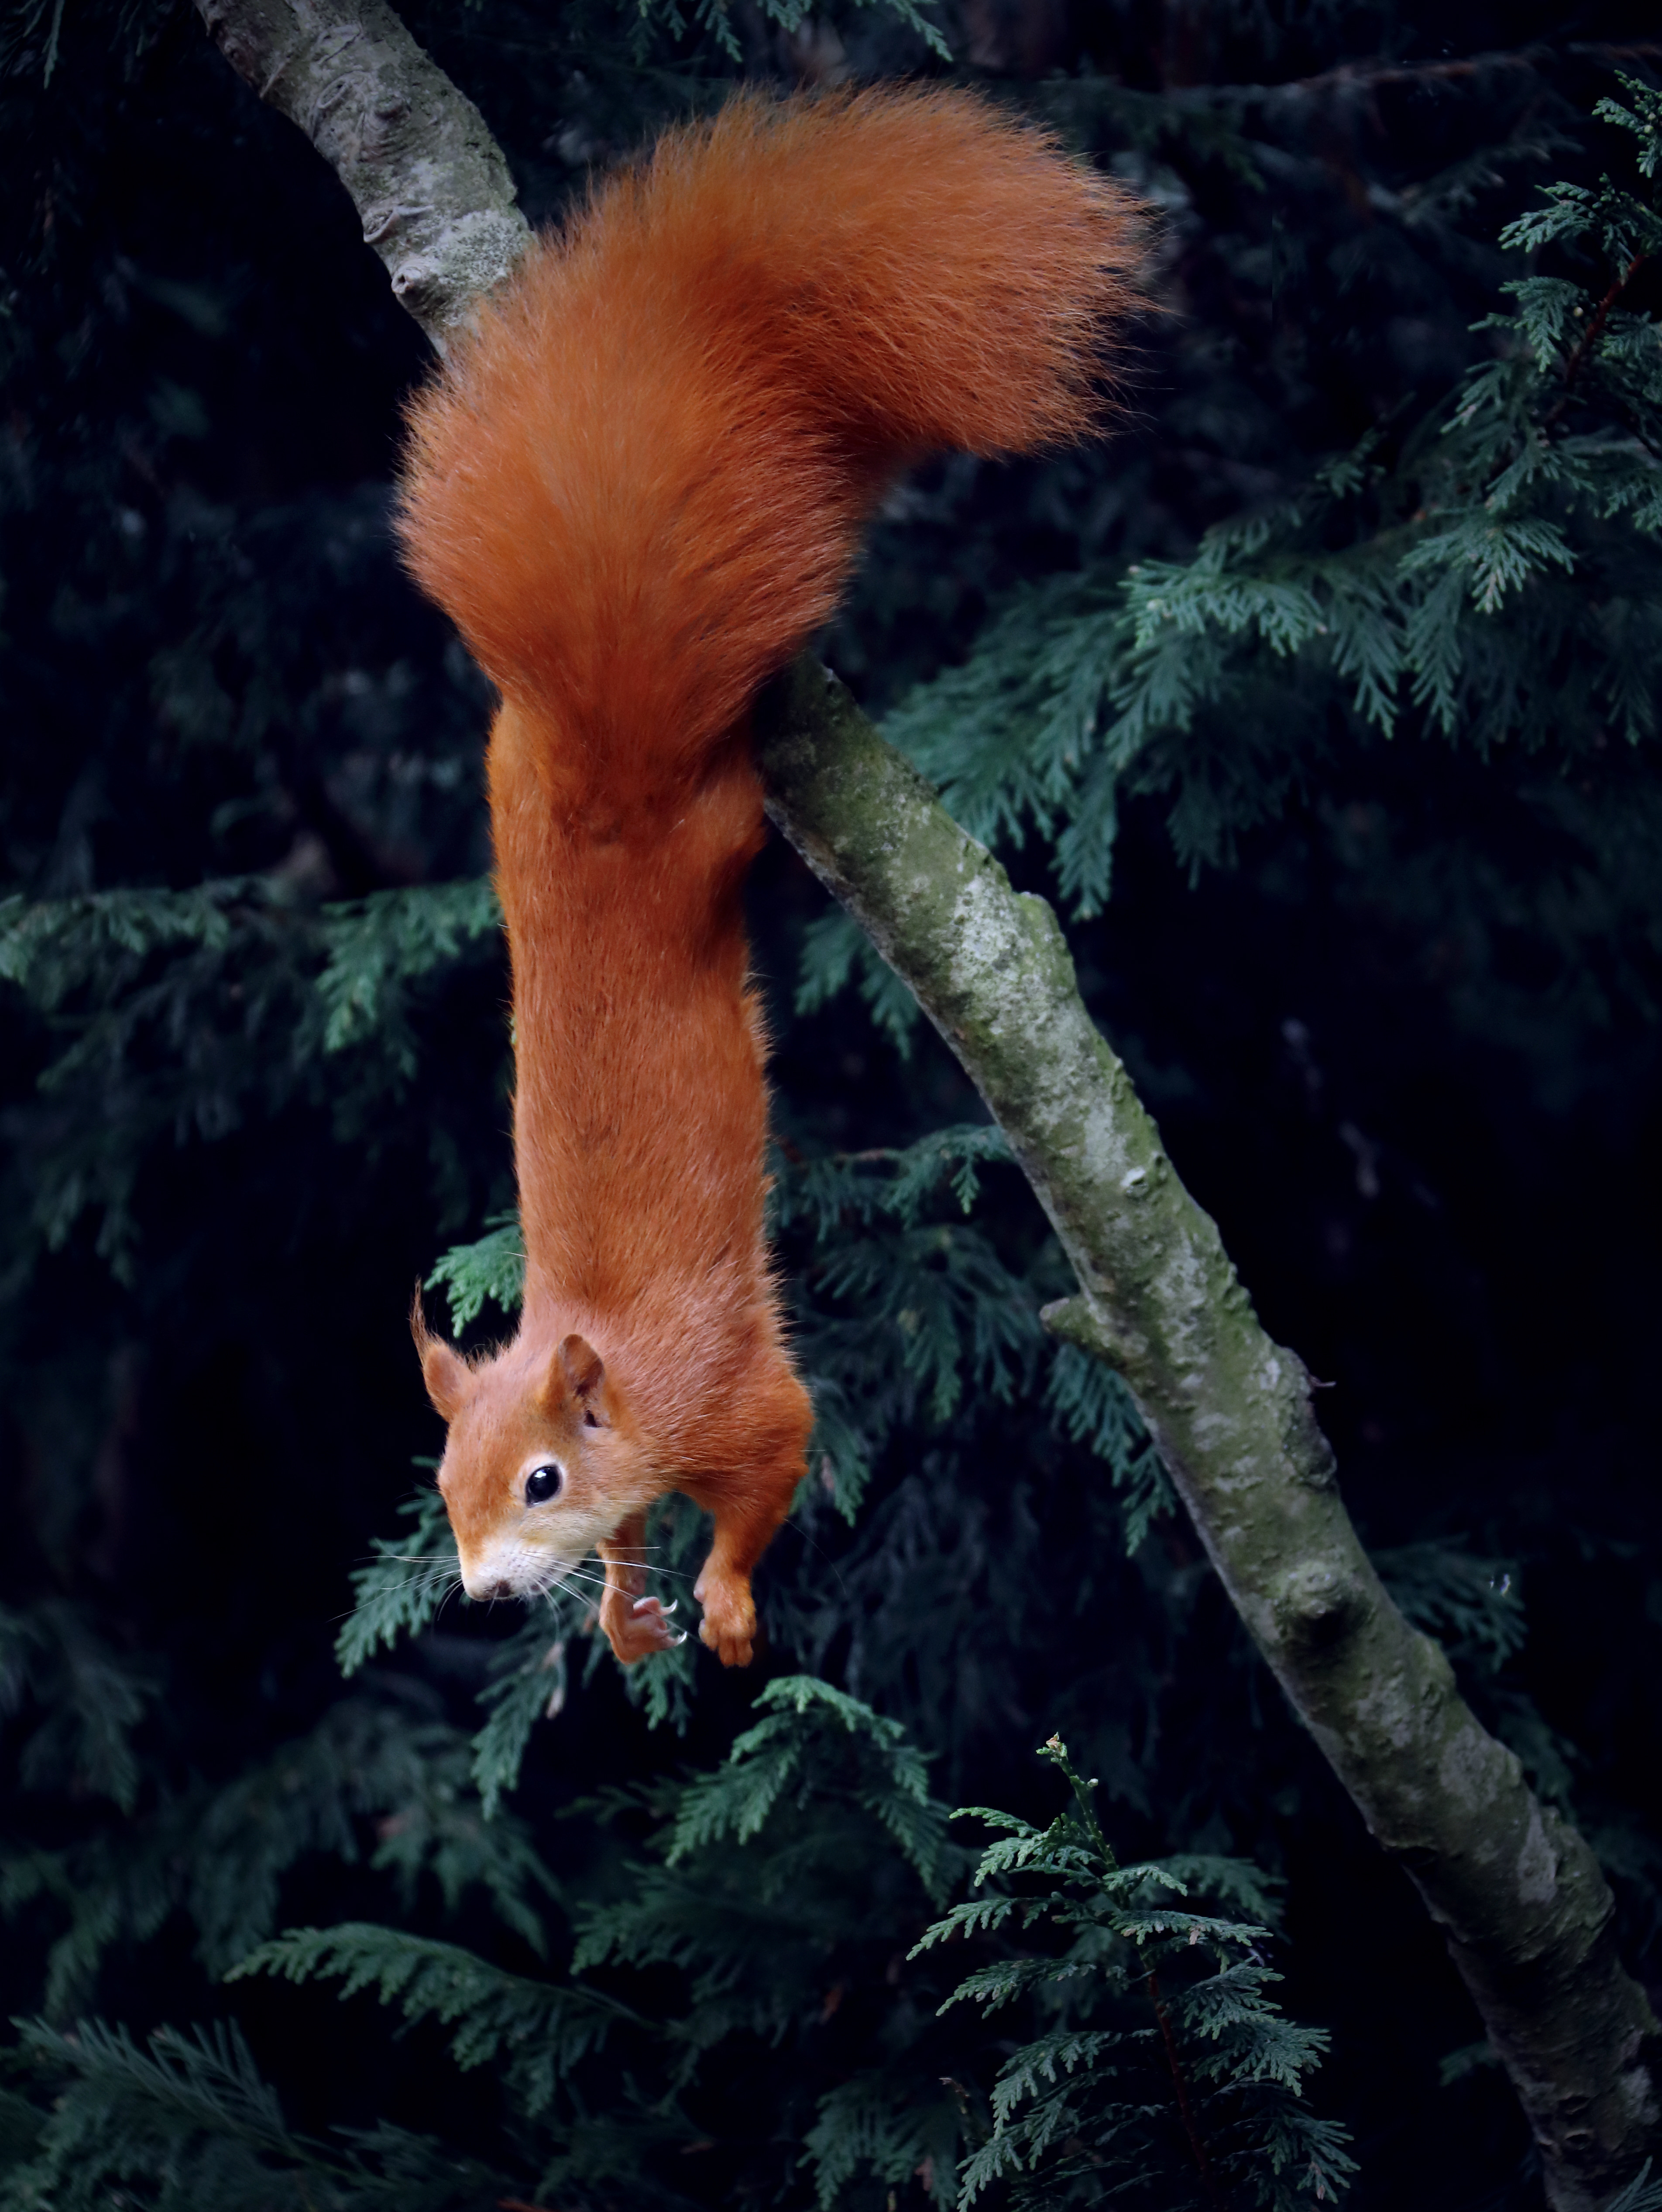 93178 download wallpaper Animals, Squirrel, Rodent, Funny, Wood, Tree, Animal screensavers and pictures for free